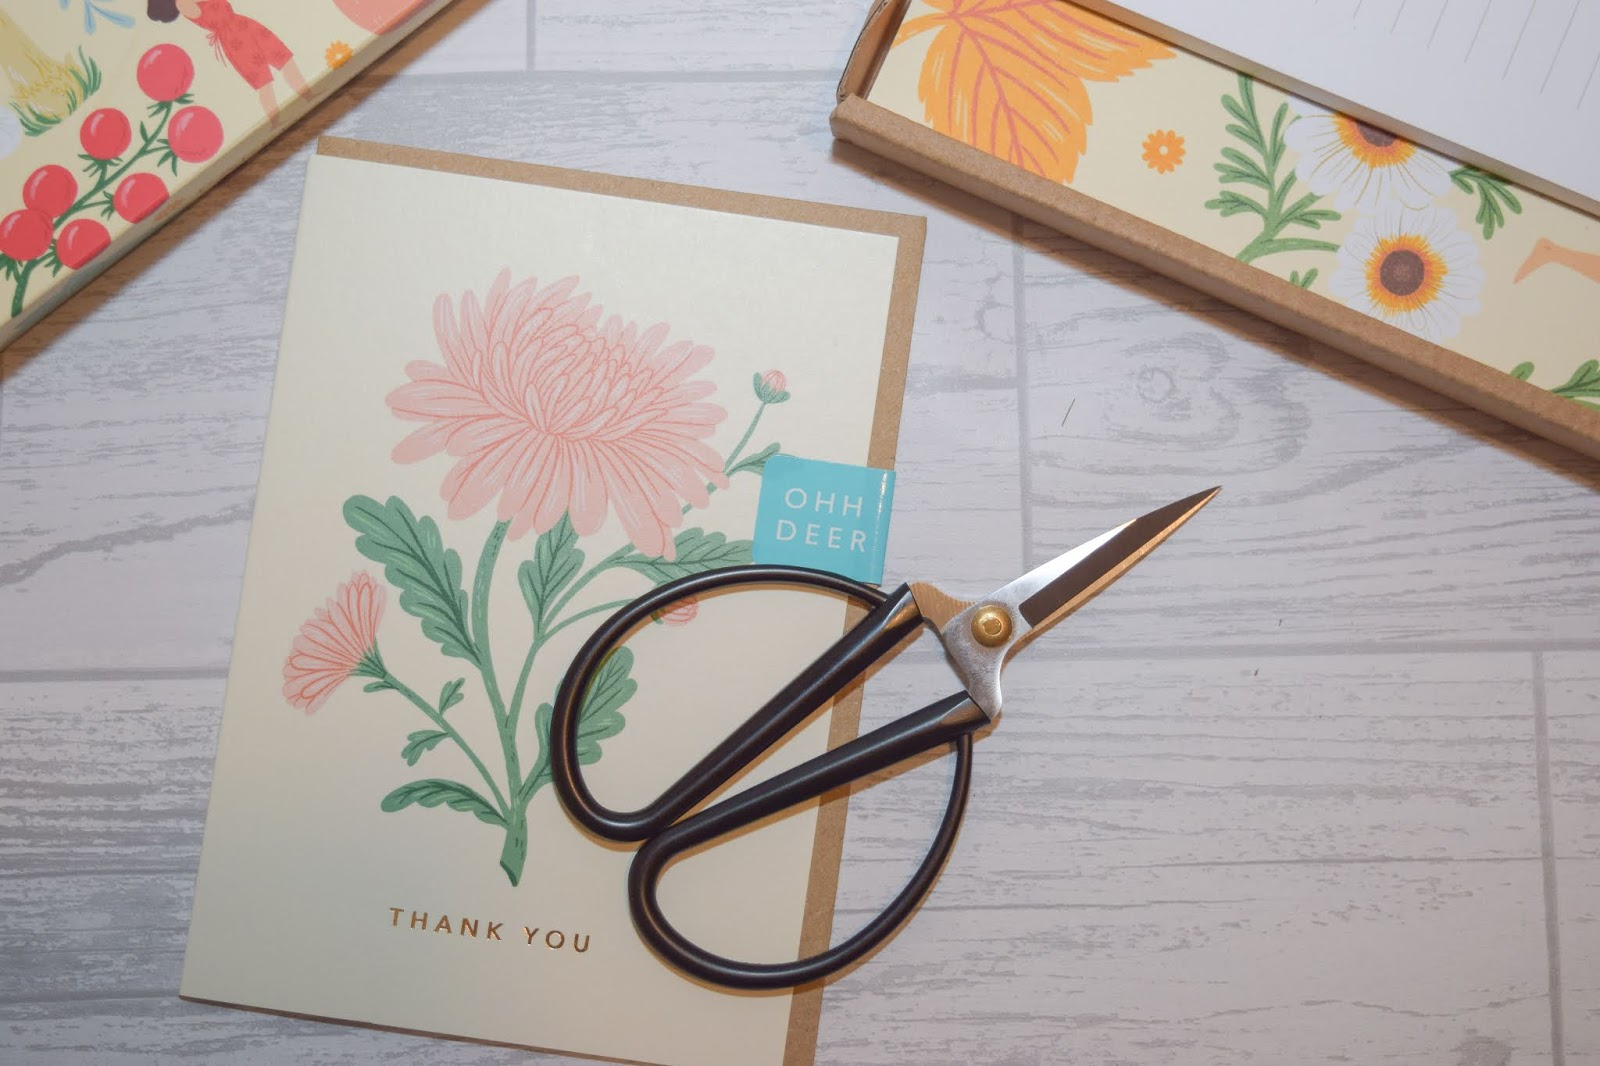 A pair of black scissors with large round handles sitting on a cream thank you card with a pink wildflower on the front.